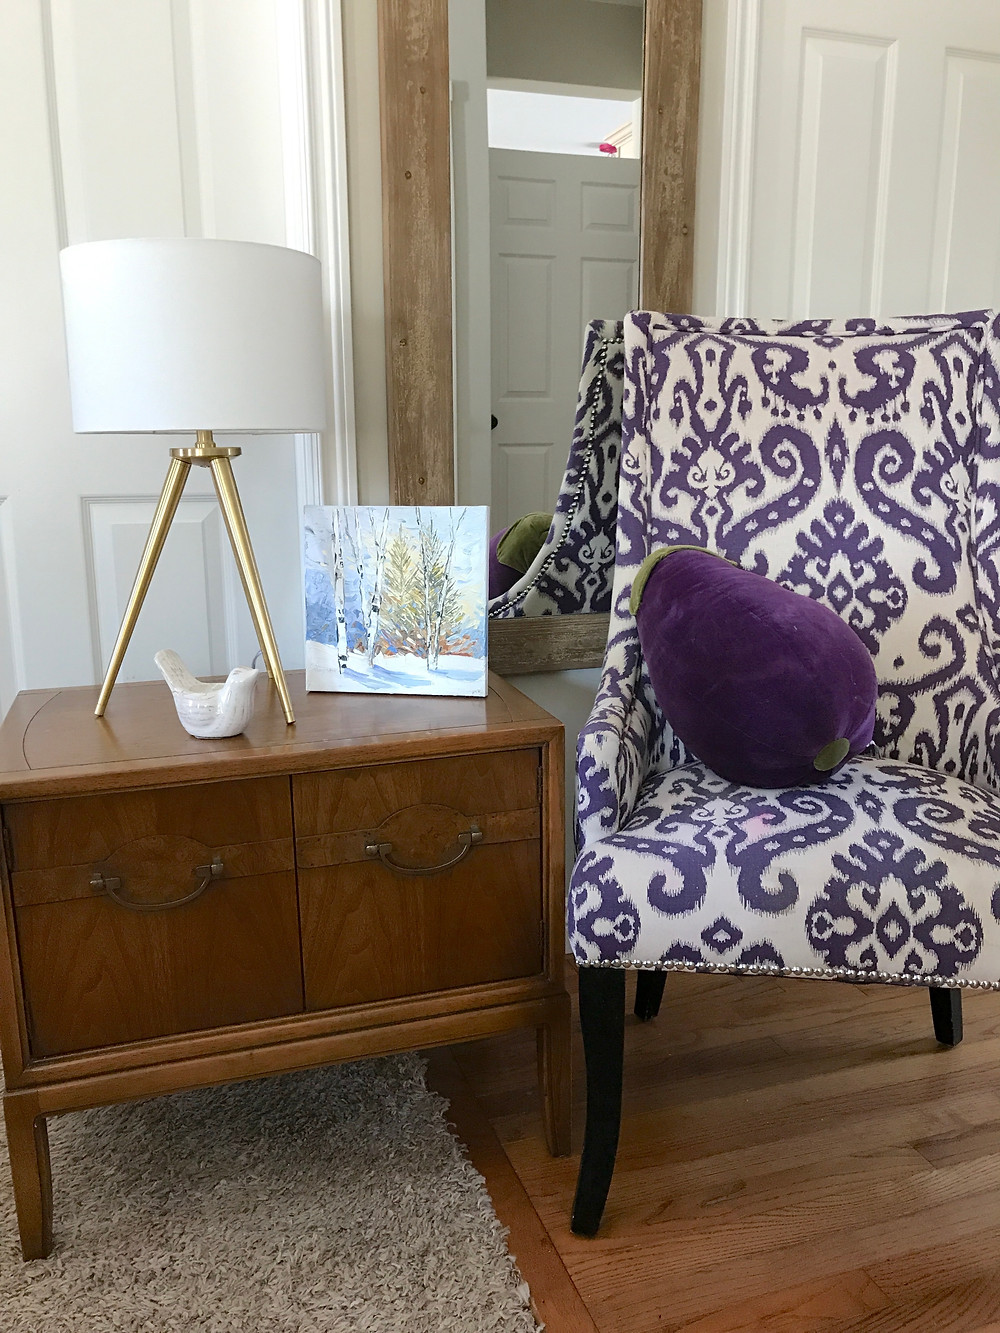 Photo of iviolet chair, brown mirror, end table in living room Lindsay Moynihan